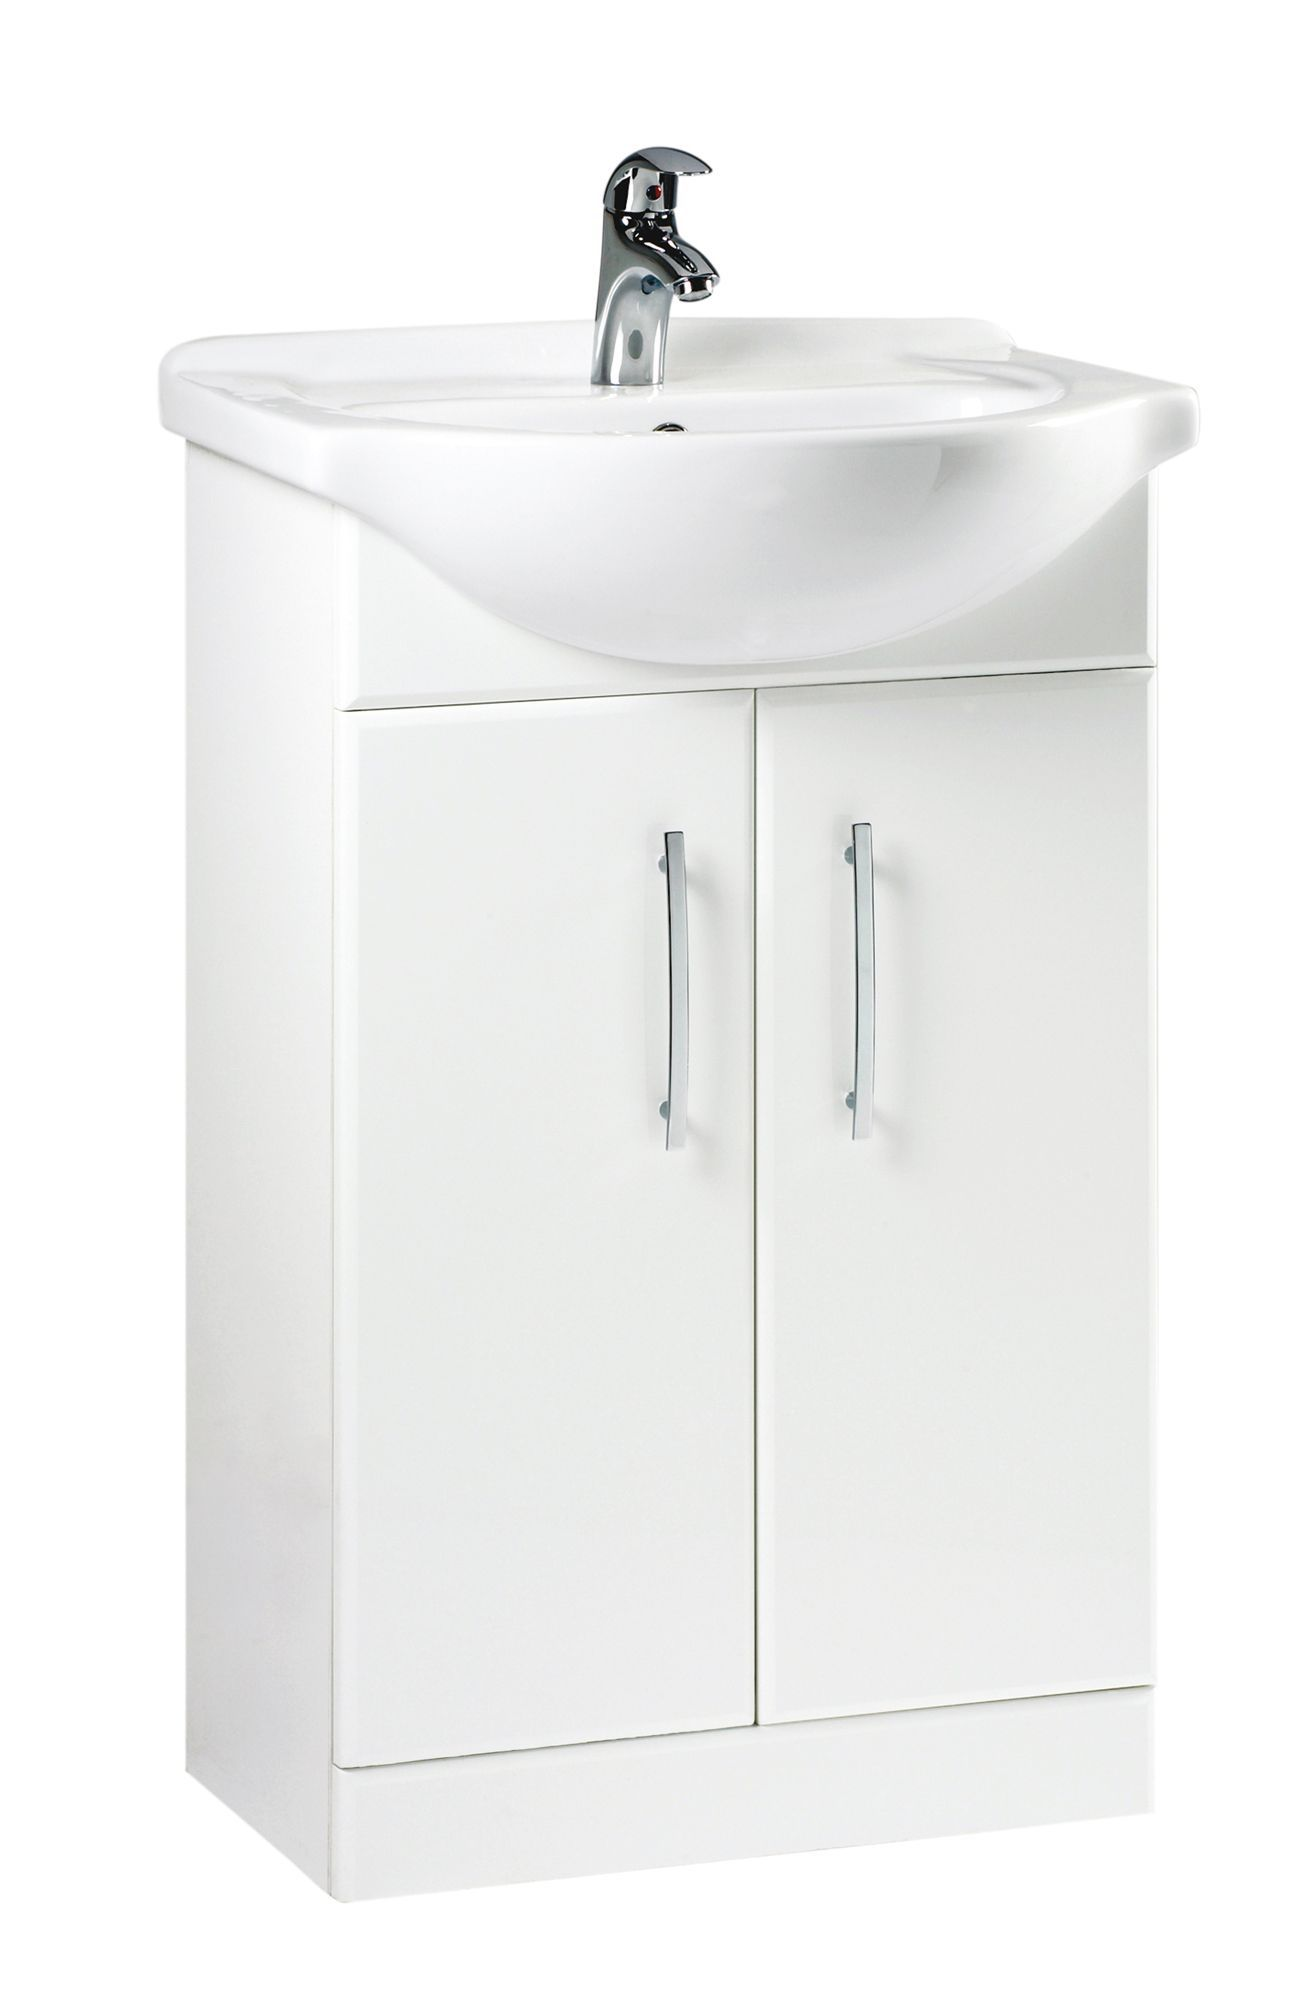 BampQ White Vanity Unit Amp Basin